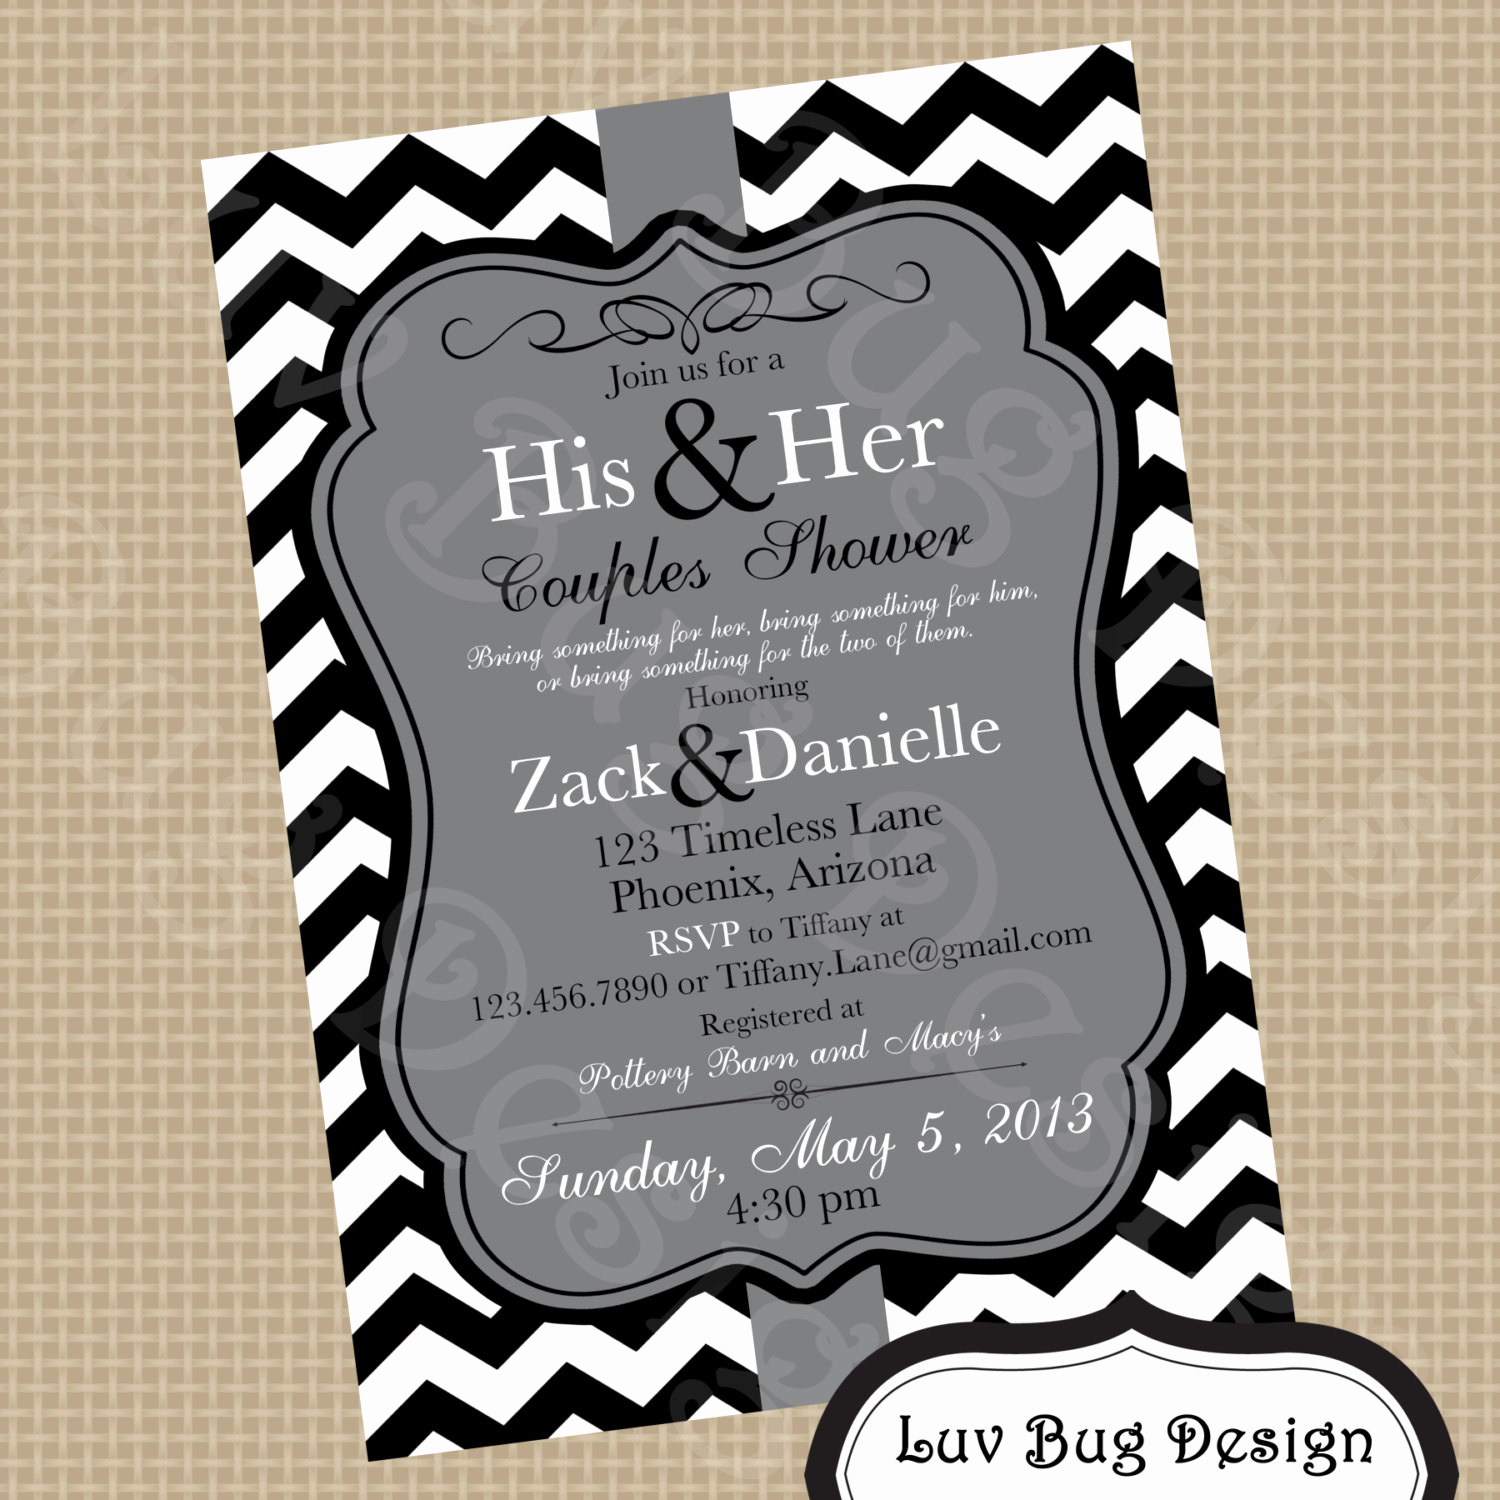 Couples Shower Invitation Templates Best Of Printable Gray themed Couples Shower or Bridal by Luvbugdesign